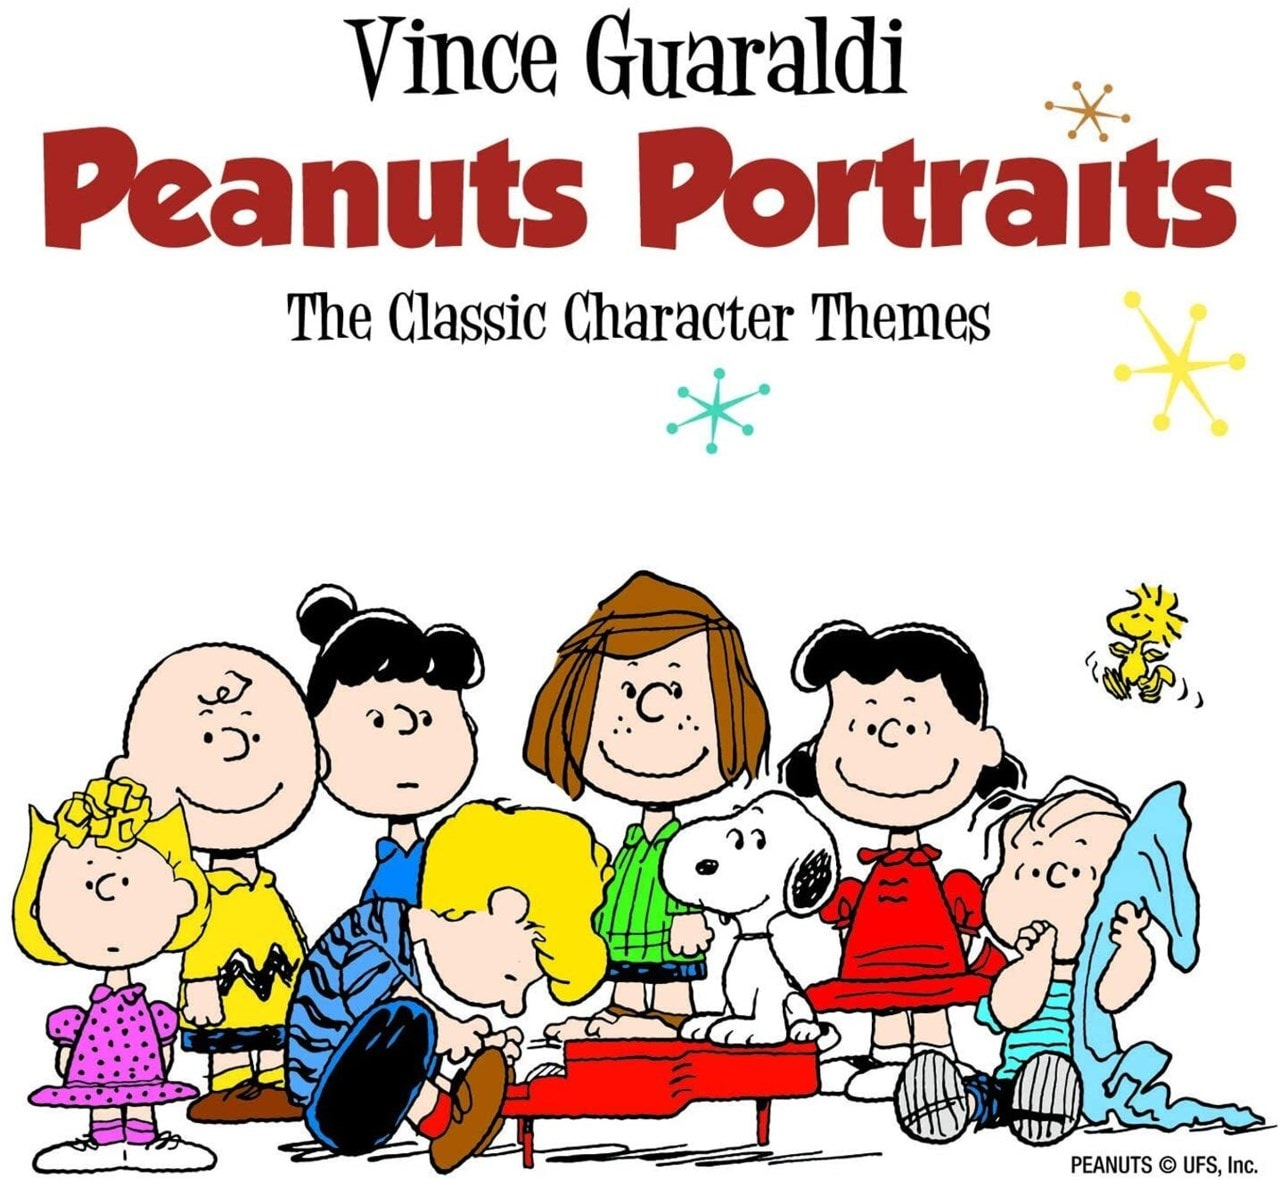 Peanuts Portraits: The Classic Character Themes - 1